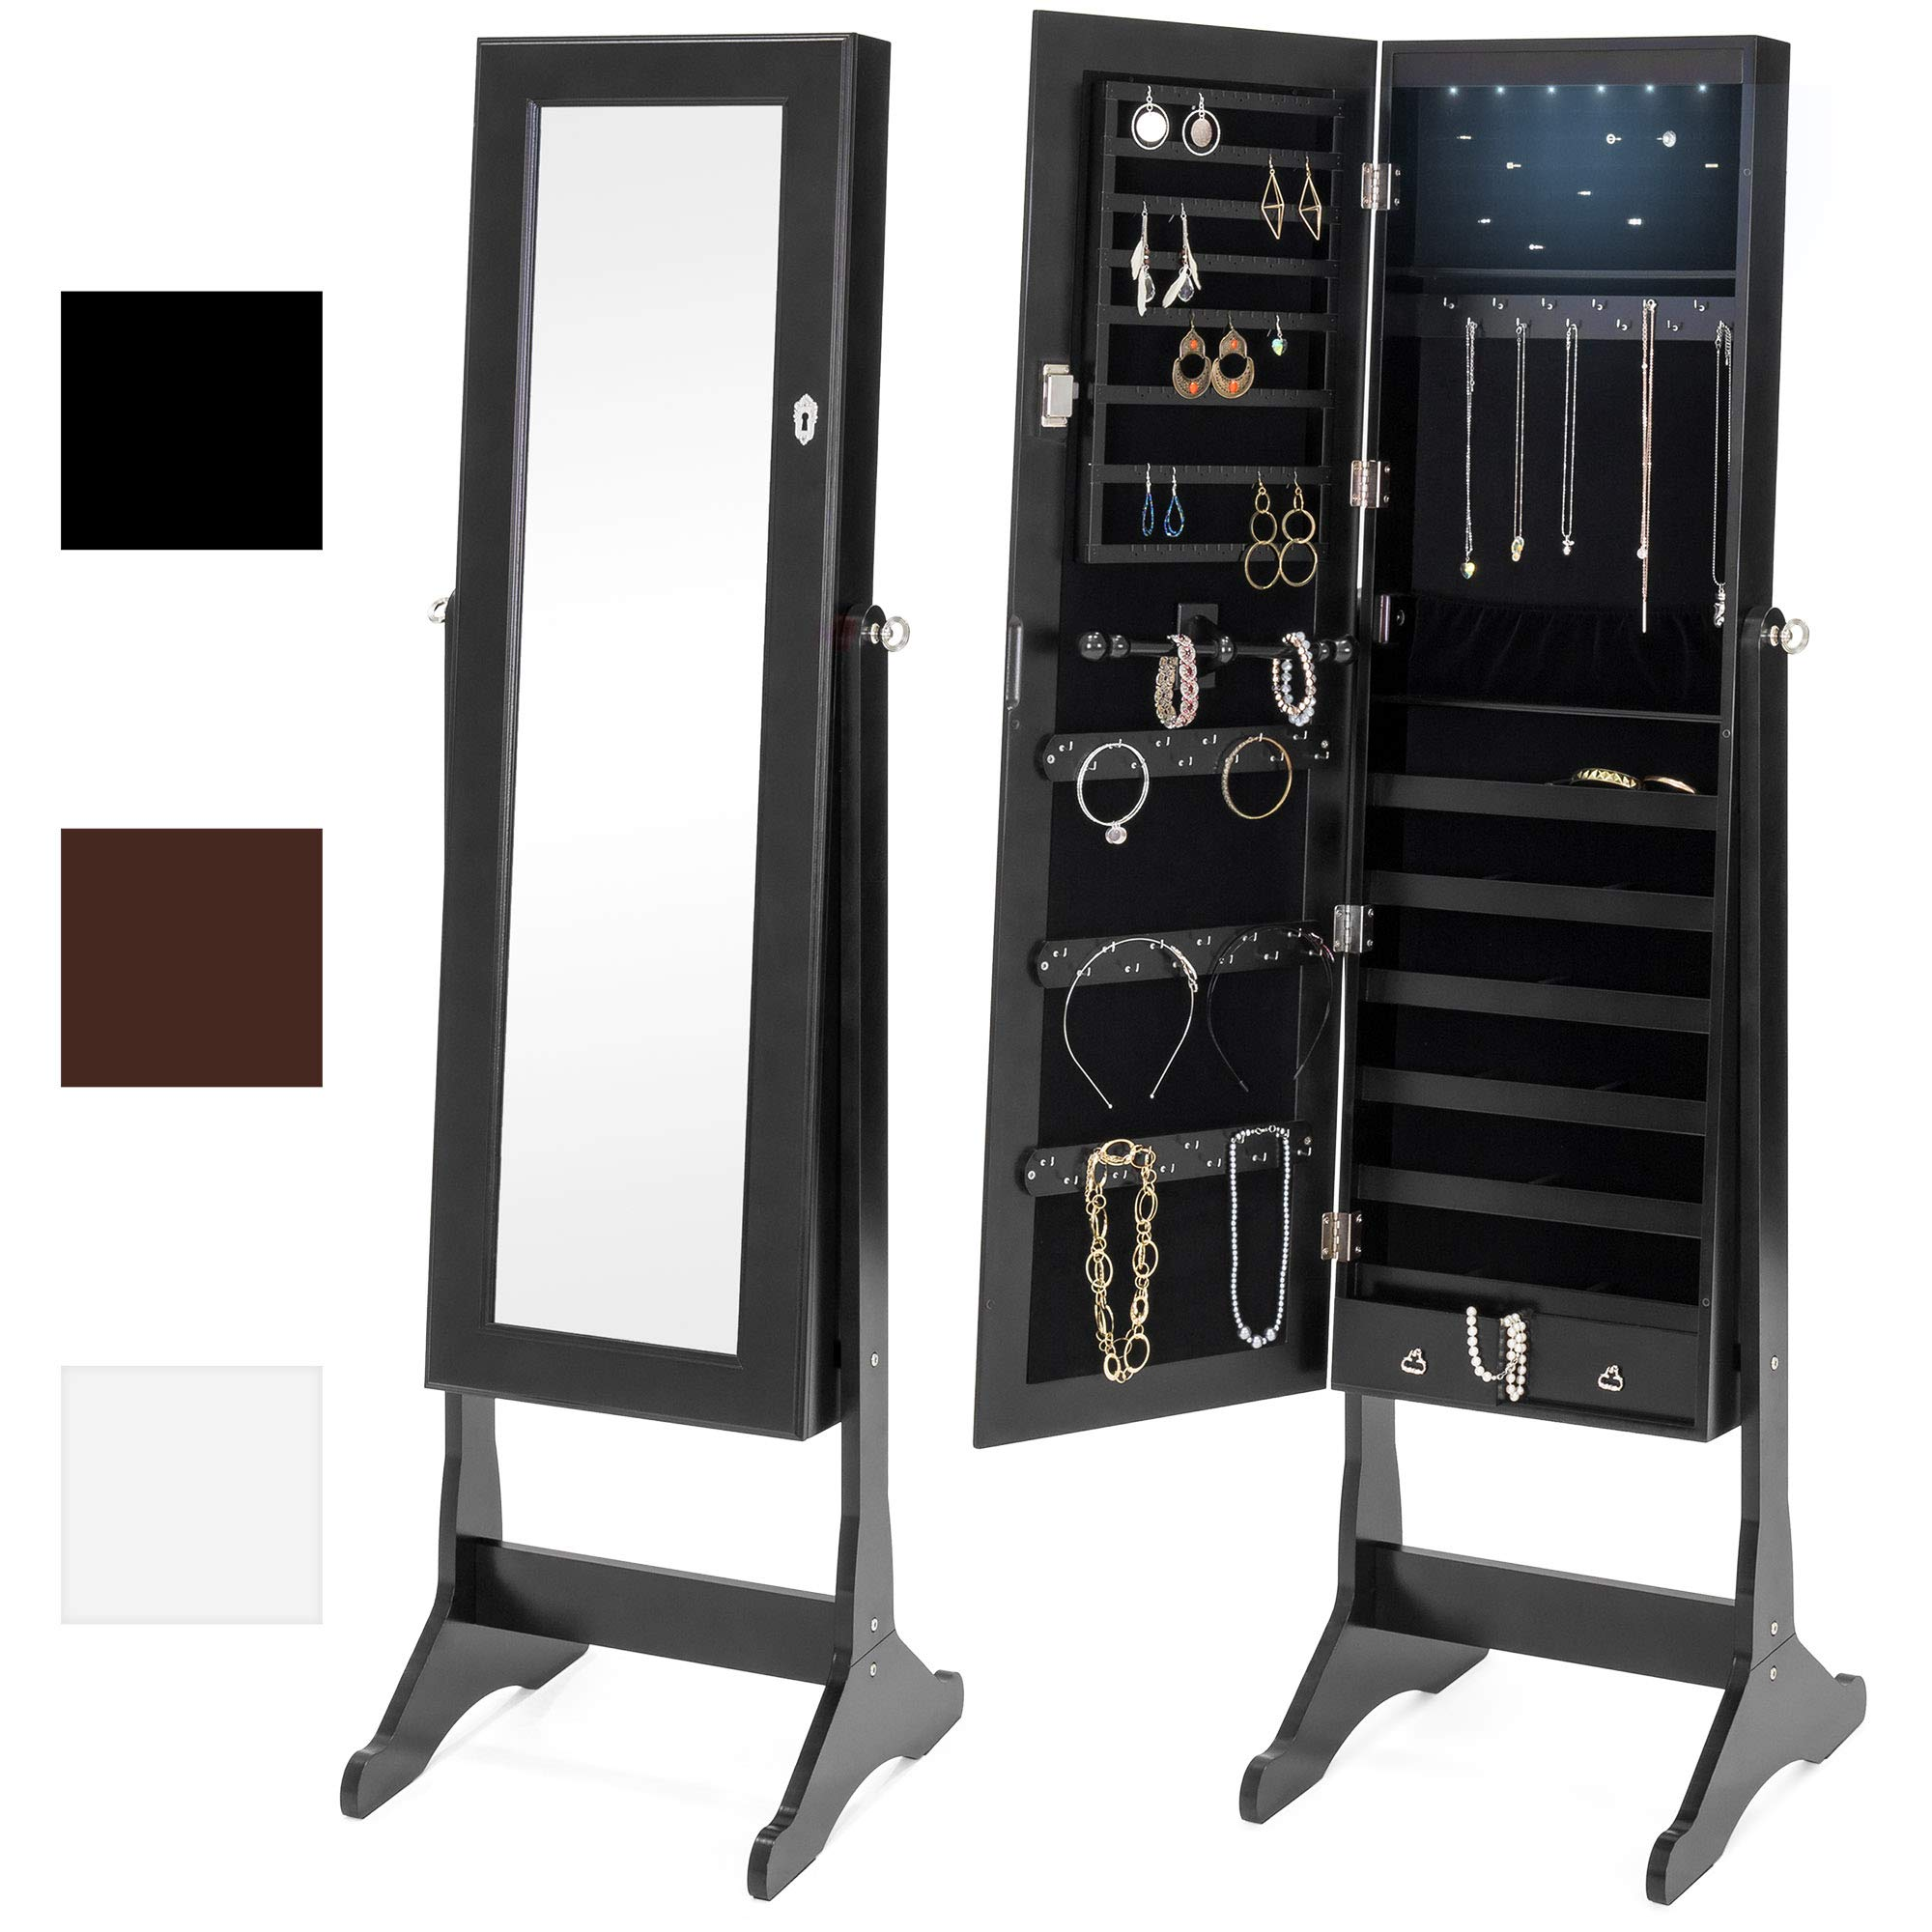 Best Choice Products 6-Tier Full Length Standing Mirrored Lockable Jewelry Storage Organizer Cabinet Armoire with 6 LED Interior Lights, 3 Angle Adjustments, Velvet Lining, Black